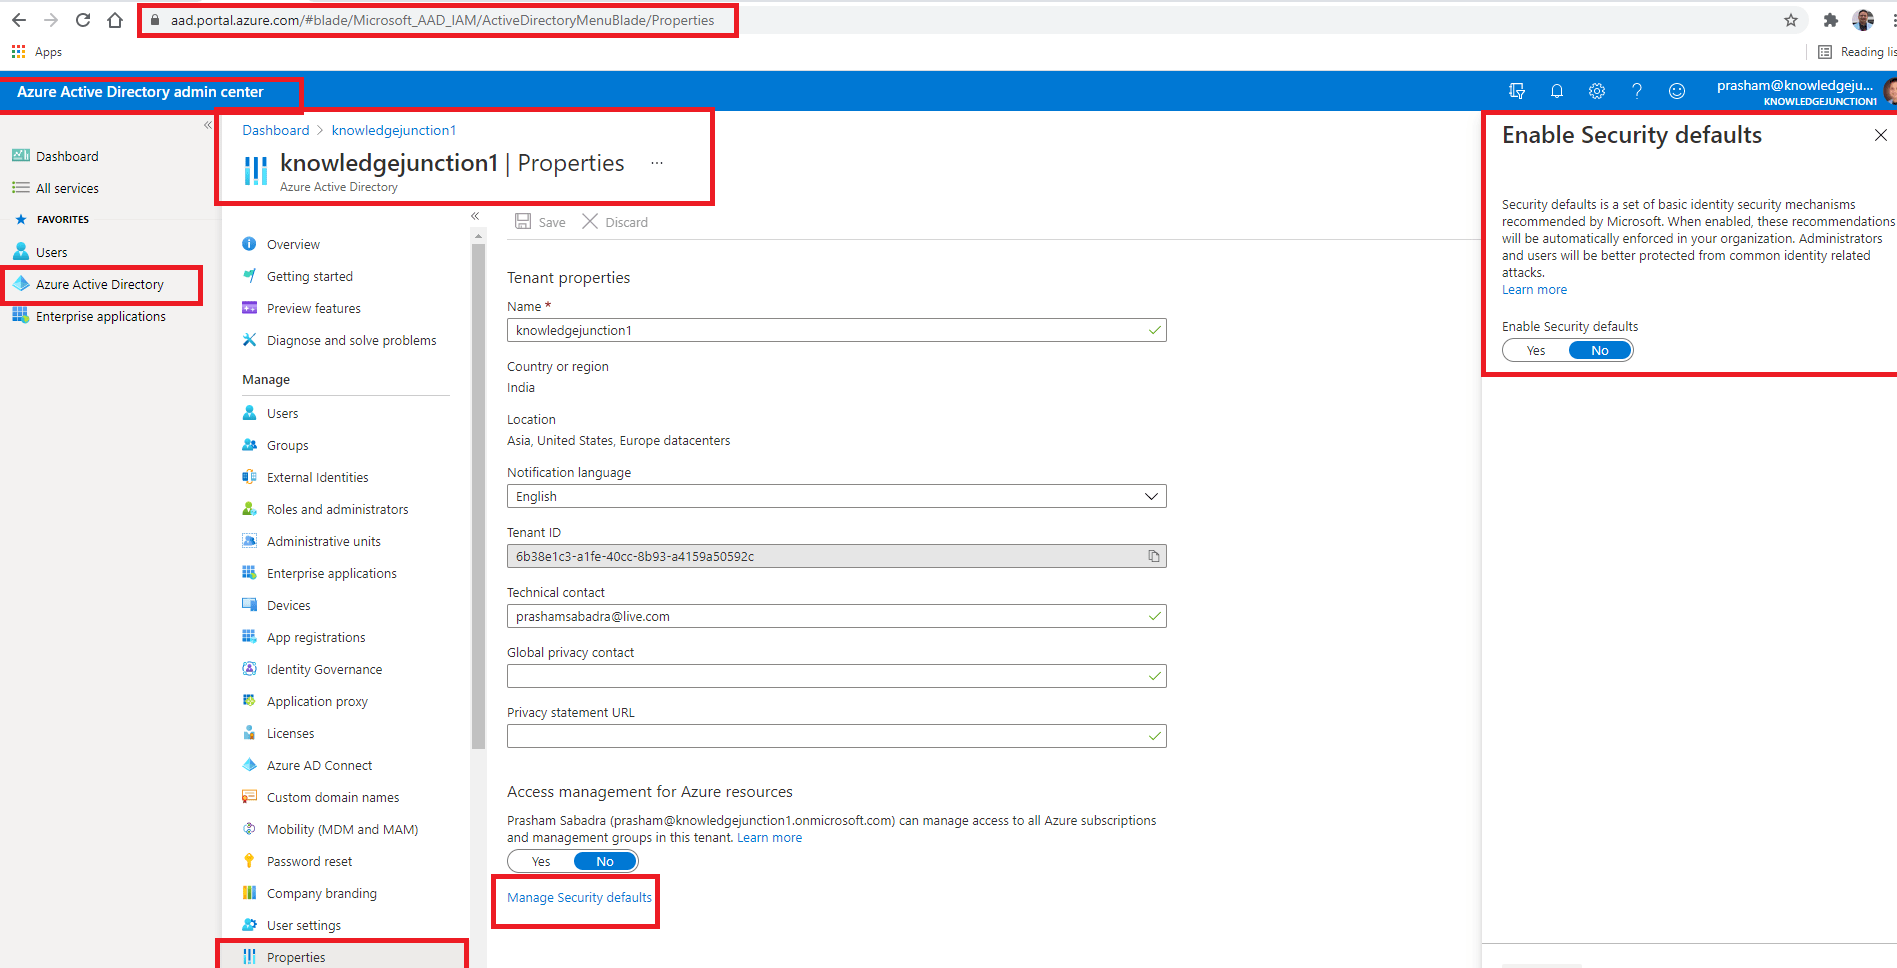 """Azure Active Directory admin center : Tenant-wide settings - """"Manage Security defaults"""" link - Enable / Disable Security defaults"""